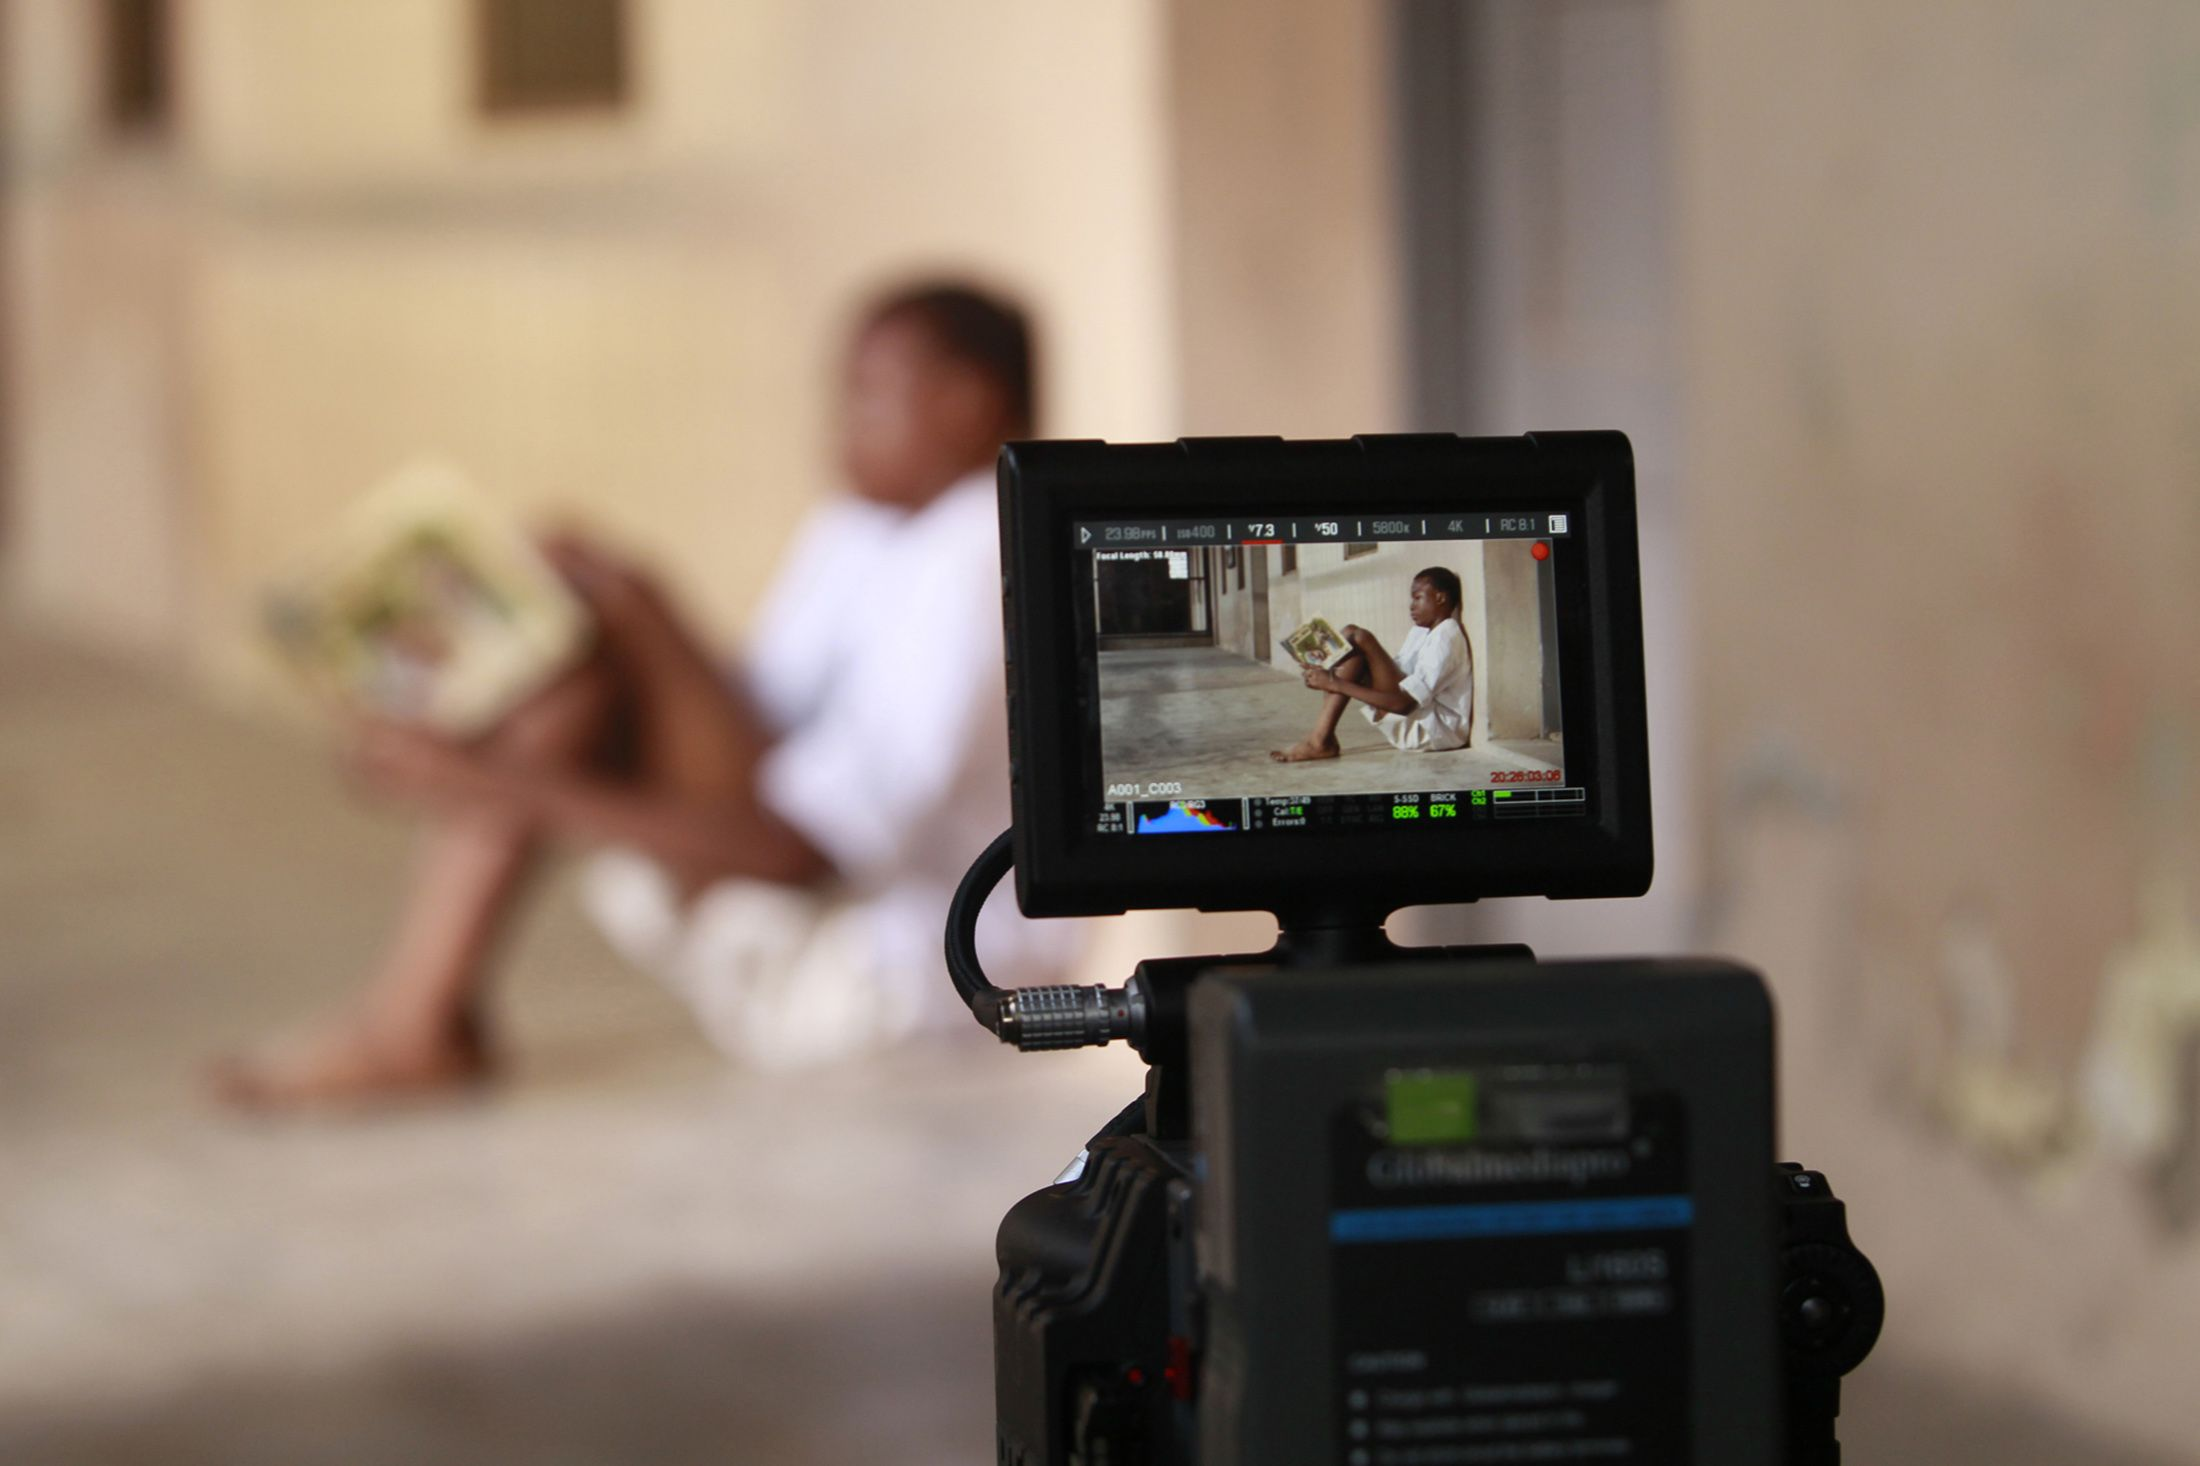 A boy acts in a Nollywood film.